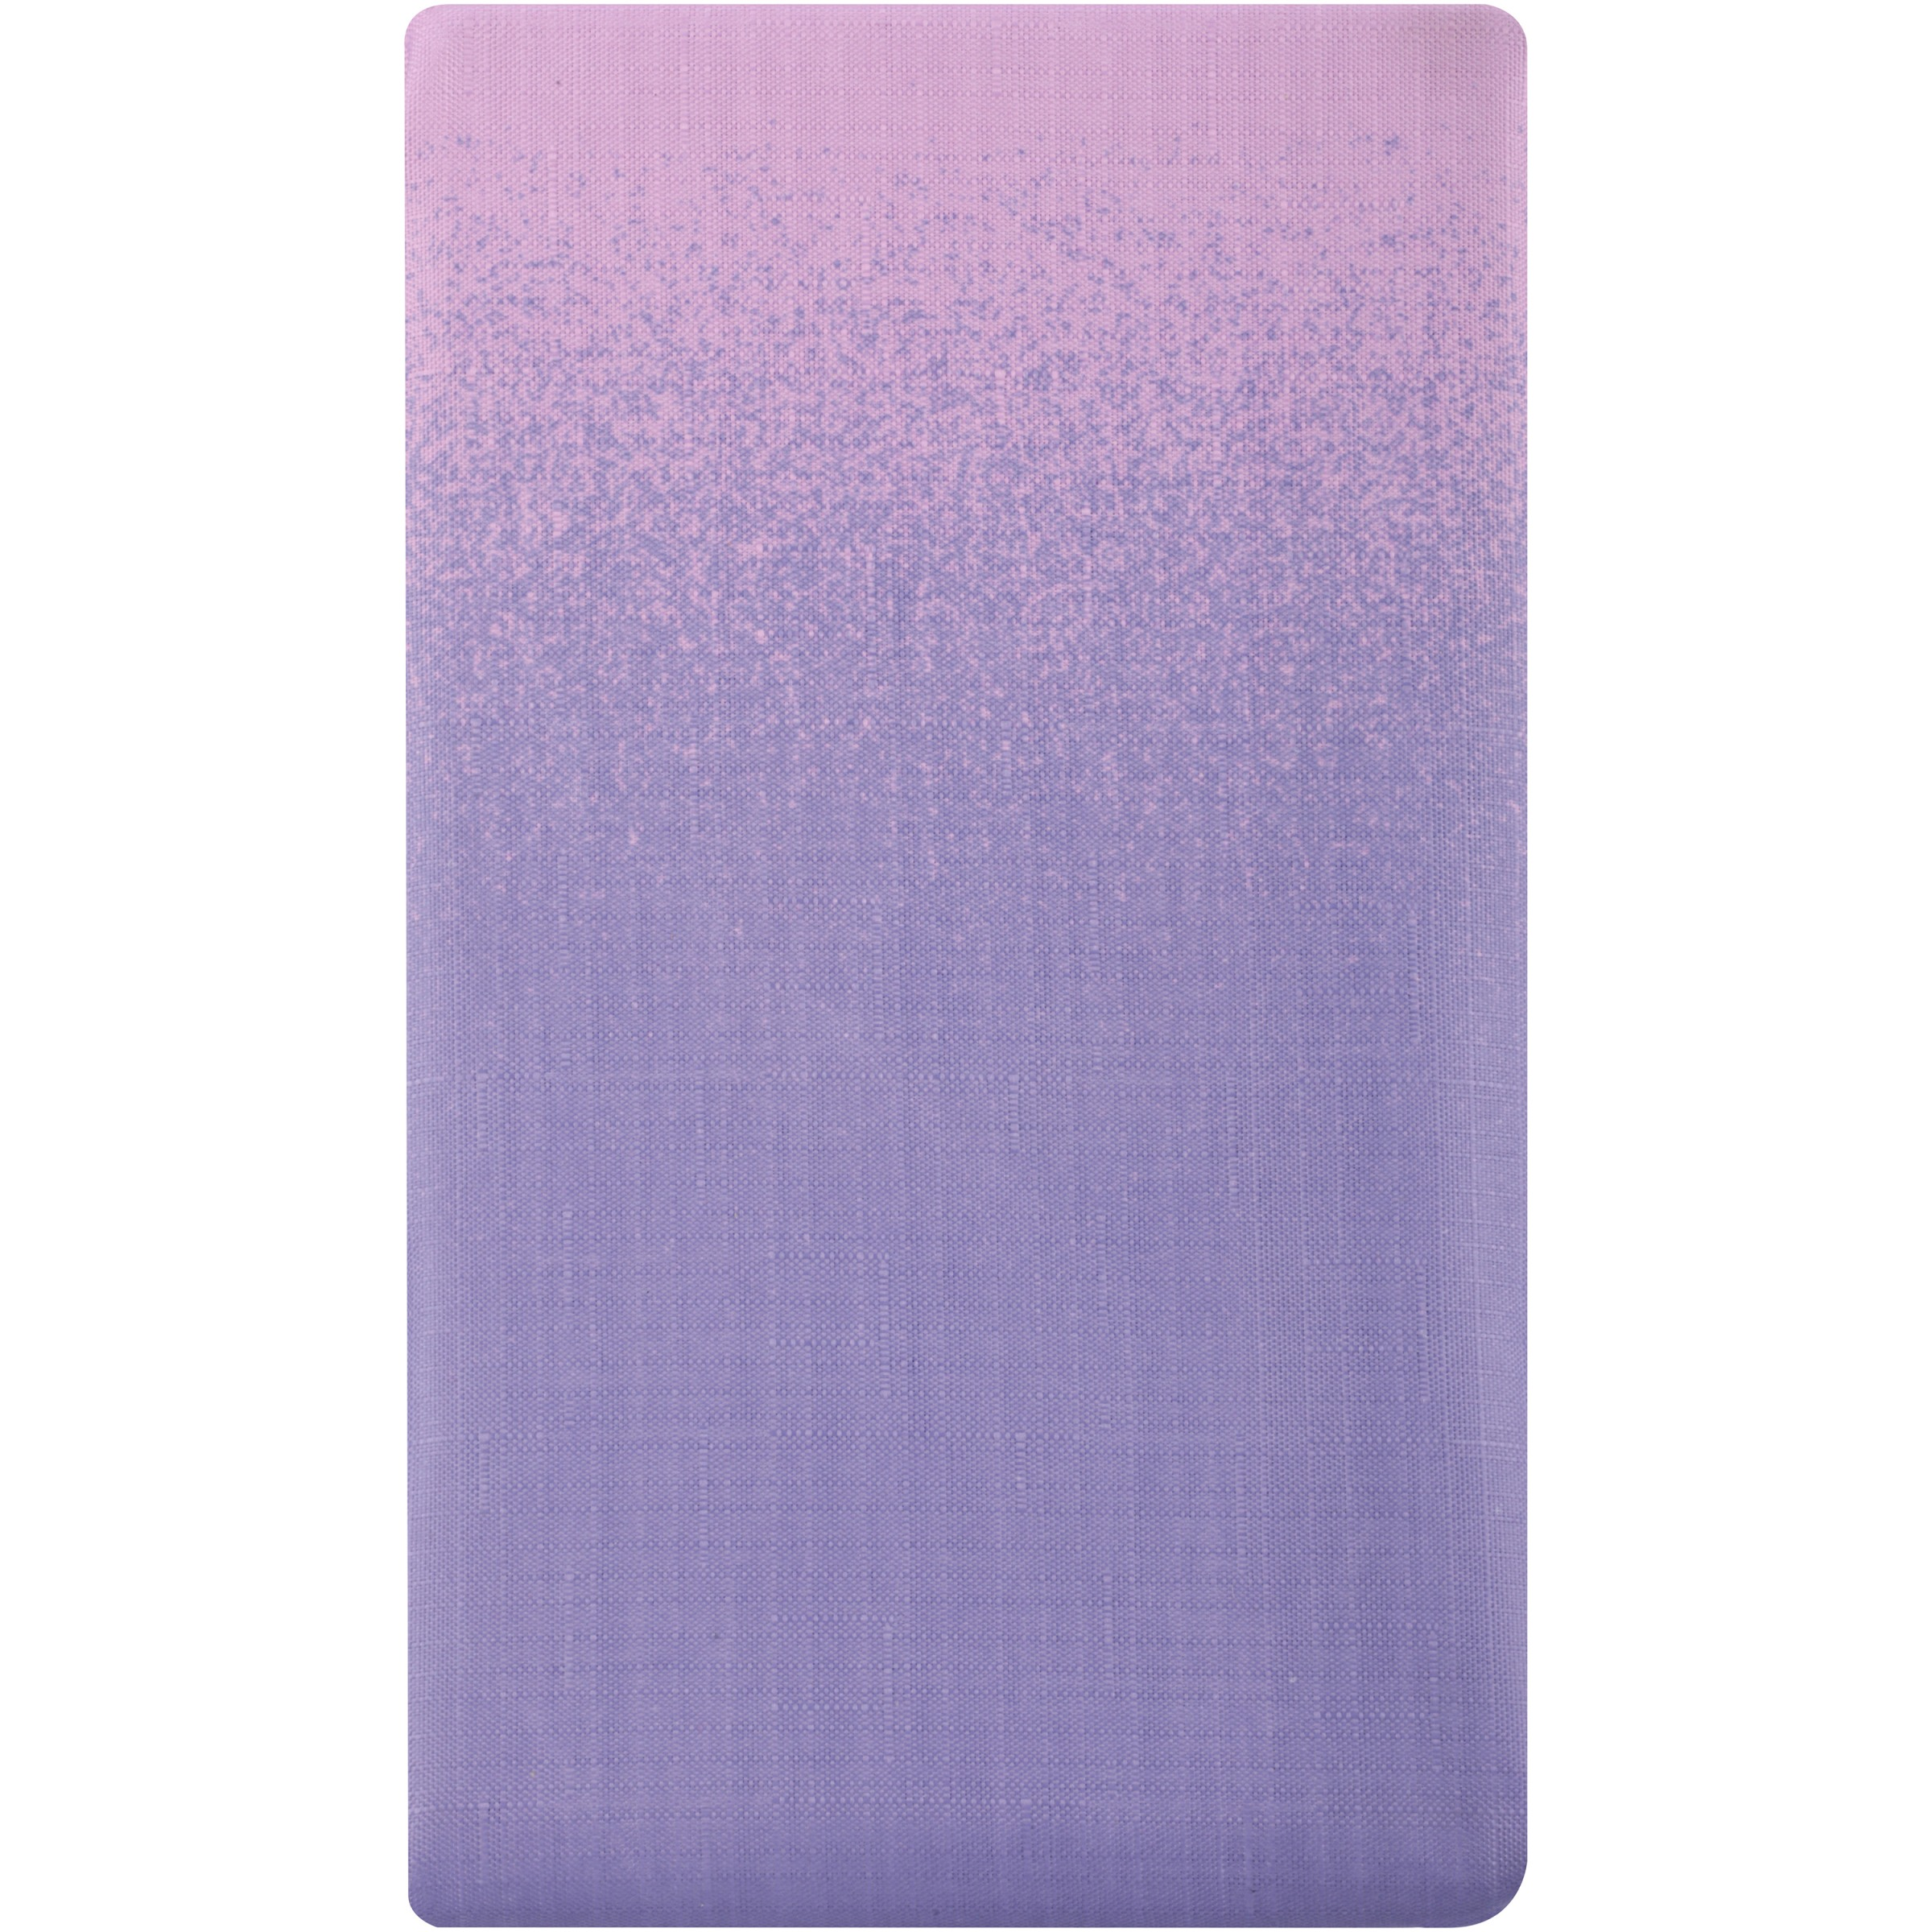 Mainstays™ Purple Ombre Fabric Shower Curtain